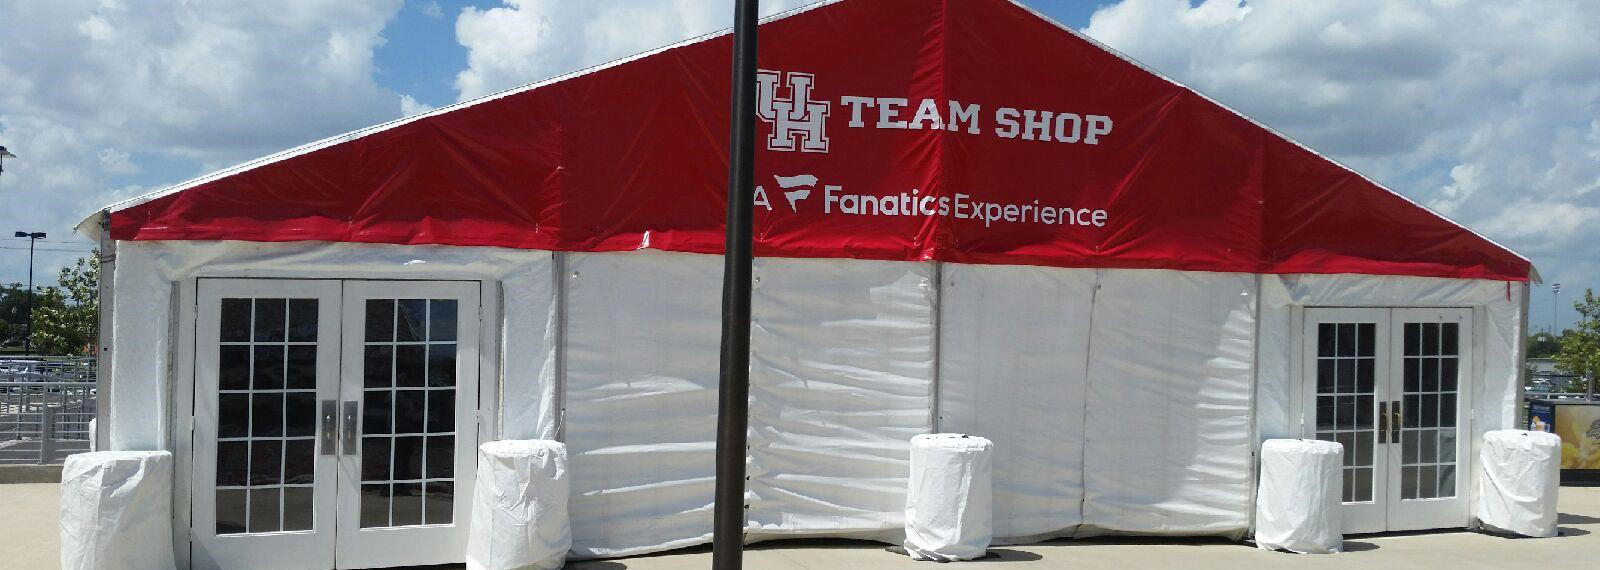 University Of Houston Team Shop